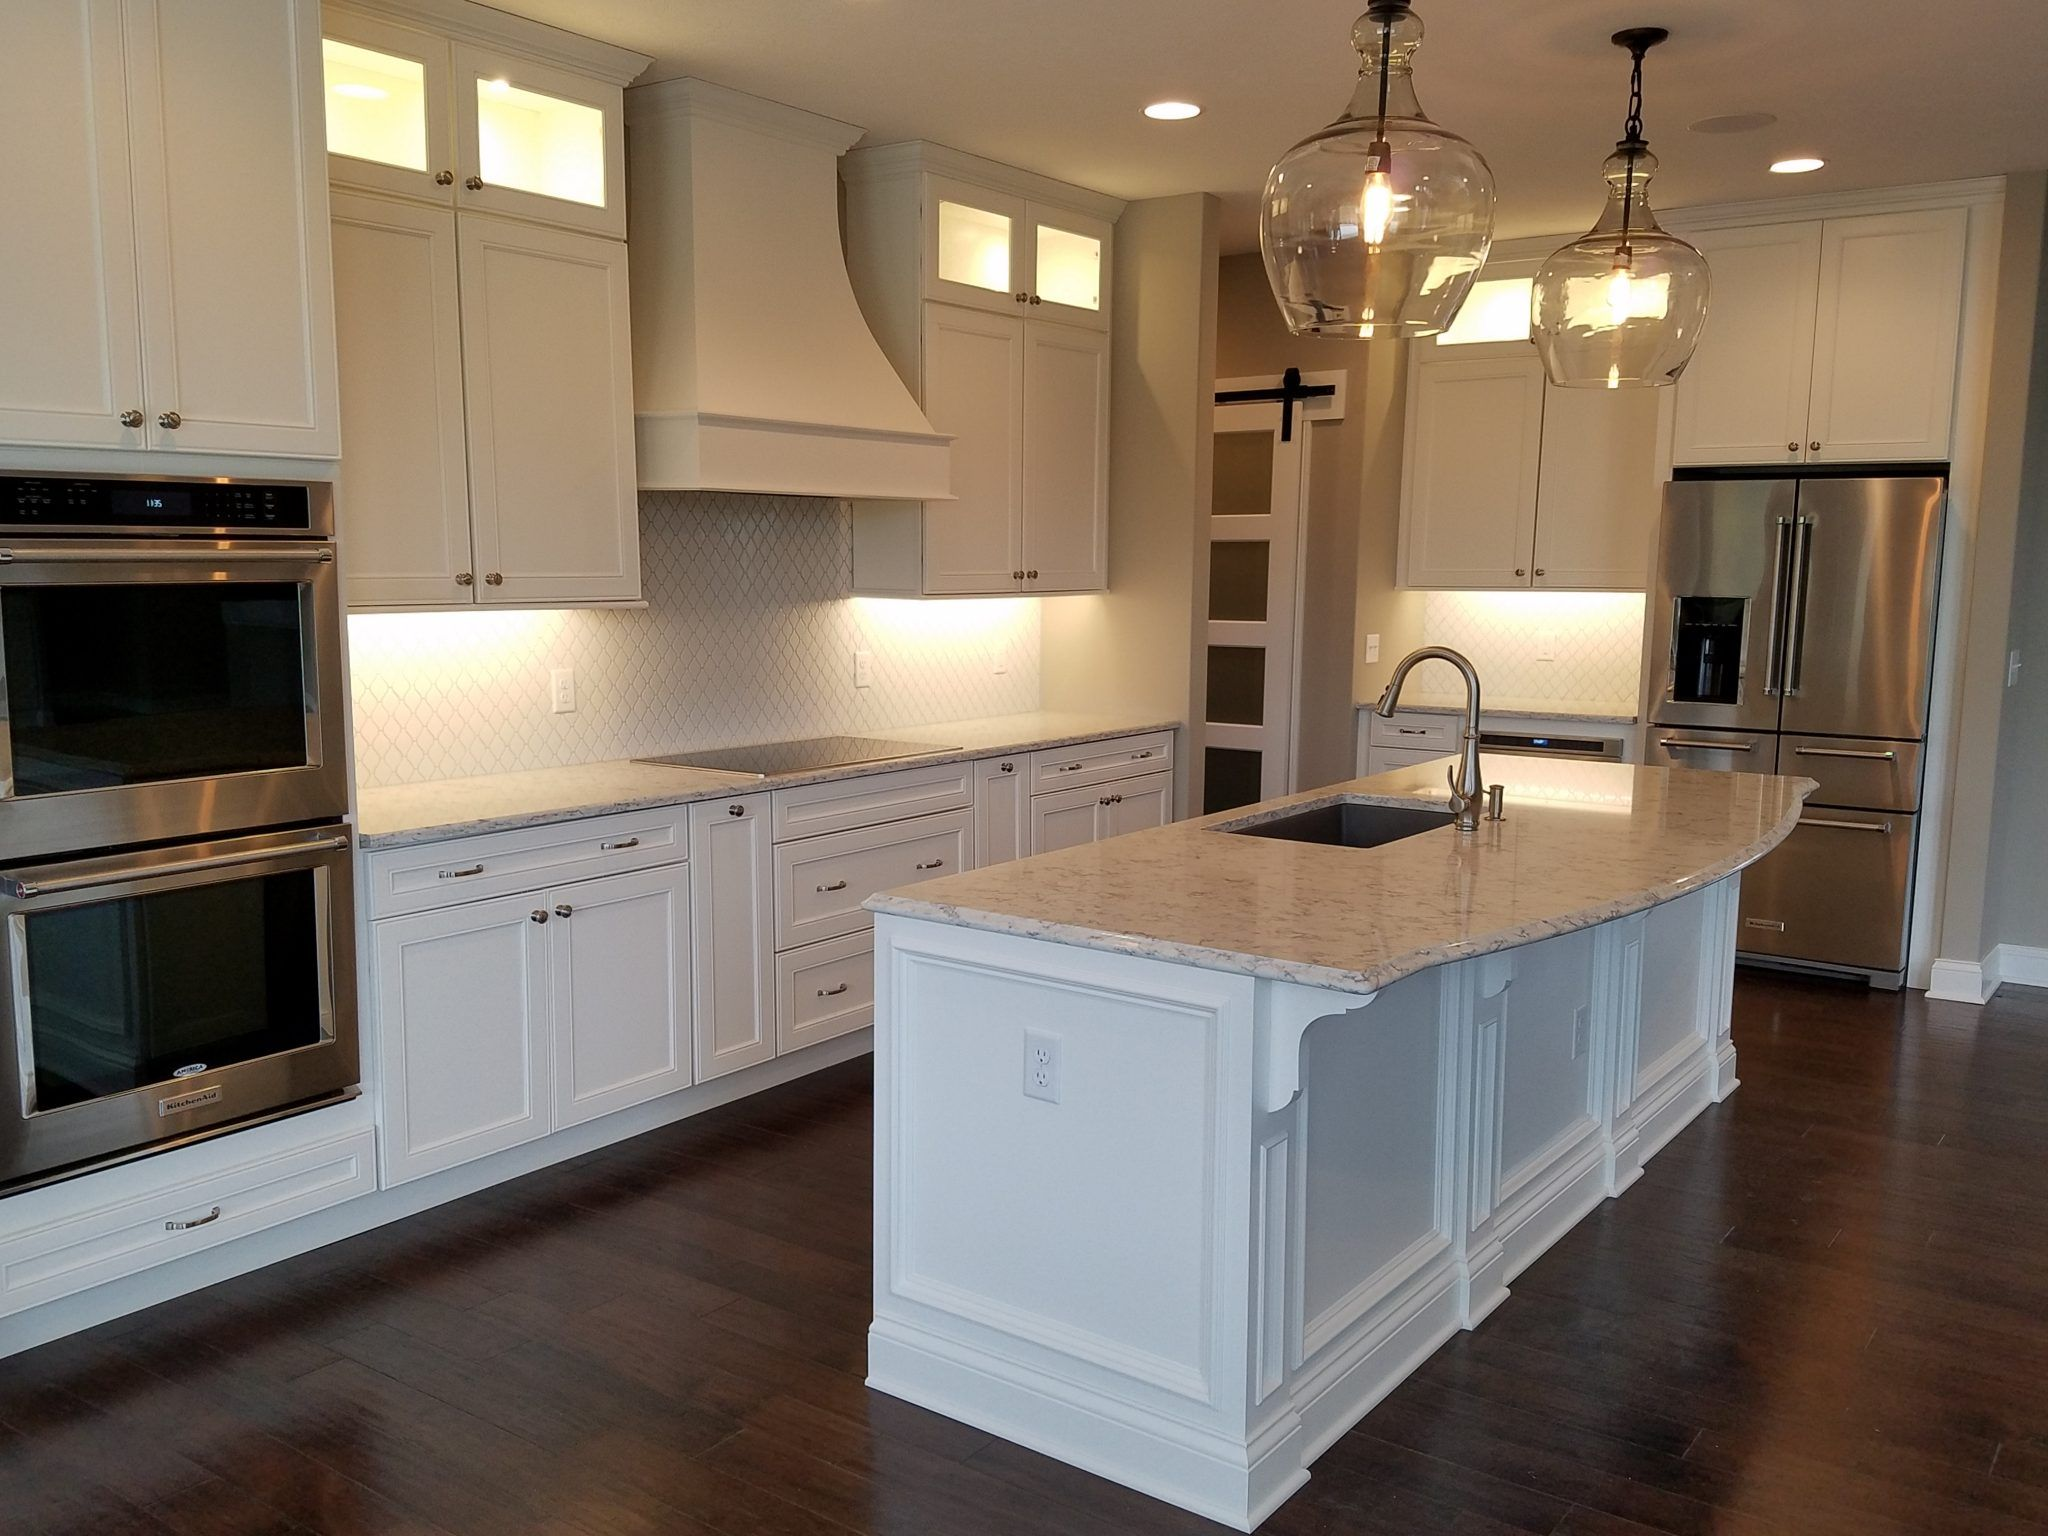 Home Builder in South Dayton, Ohio, building each home ...